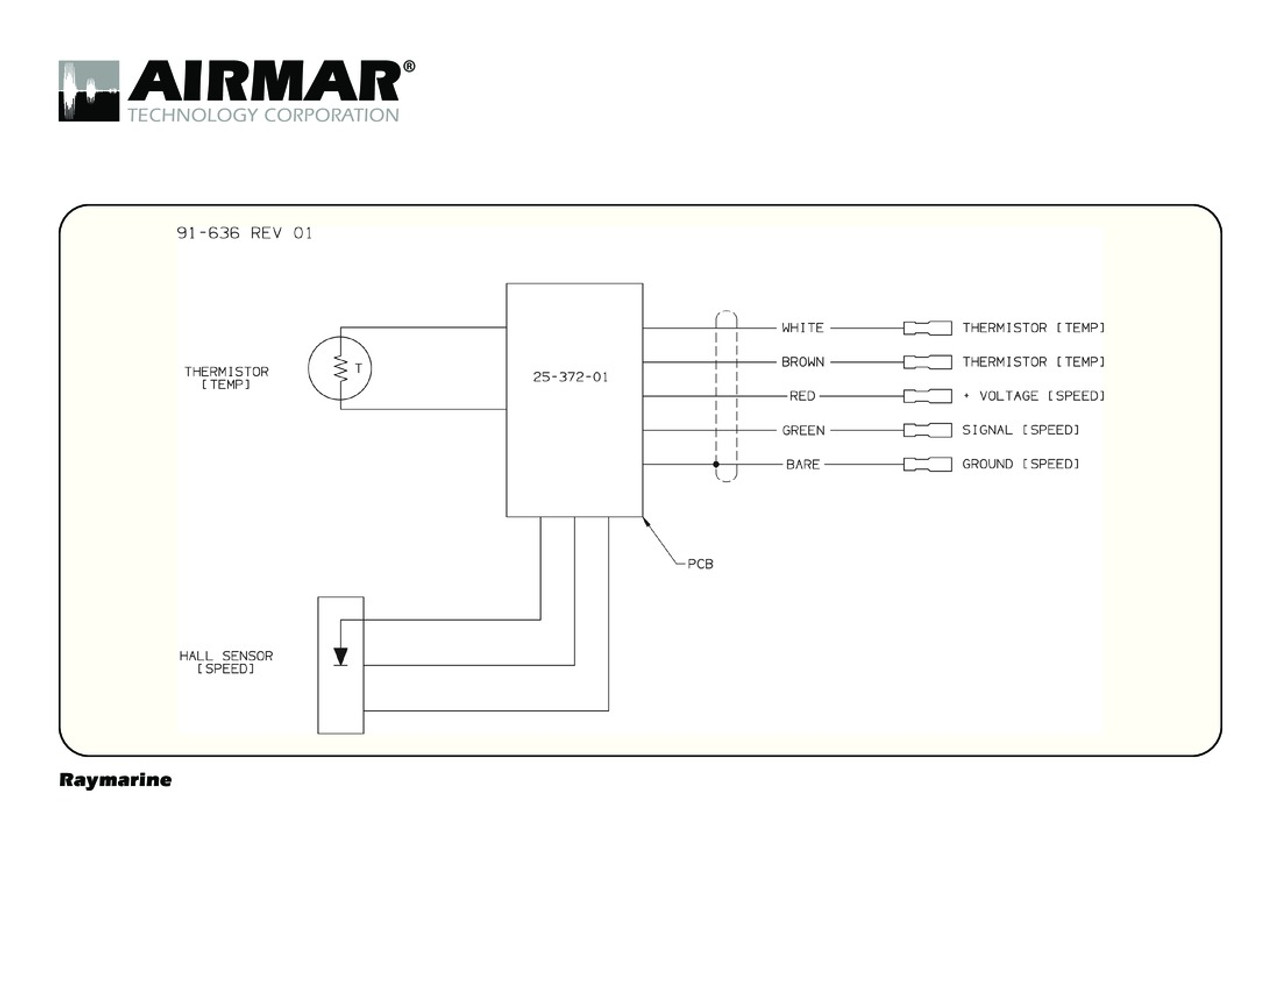 airmar wiring diagram raymarine iso blue bottle marine rh bluebottlemarine com Residential Electrical Wiring Diagrams Basic Electrical Wiring Diagrams